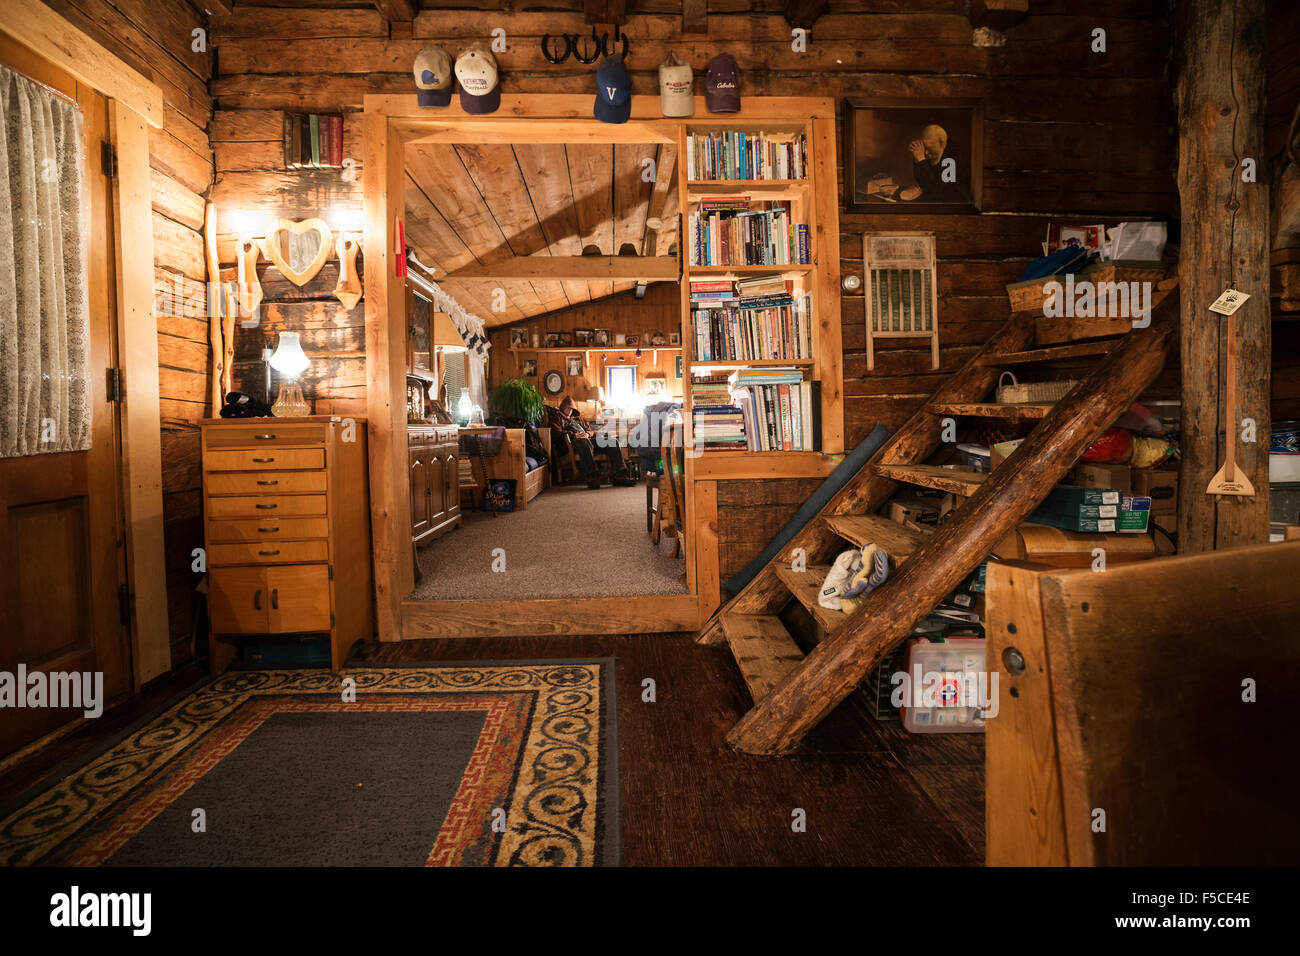 Interior of a cozy log cabin on the Gunflint Trail in northern Minnesota, USA - Stock Image